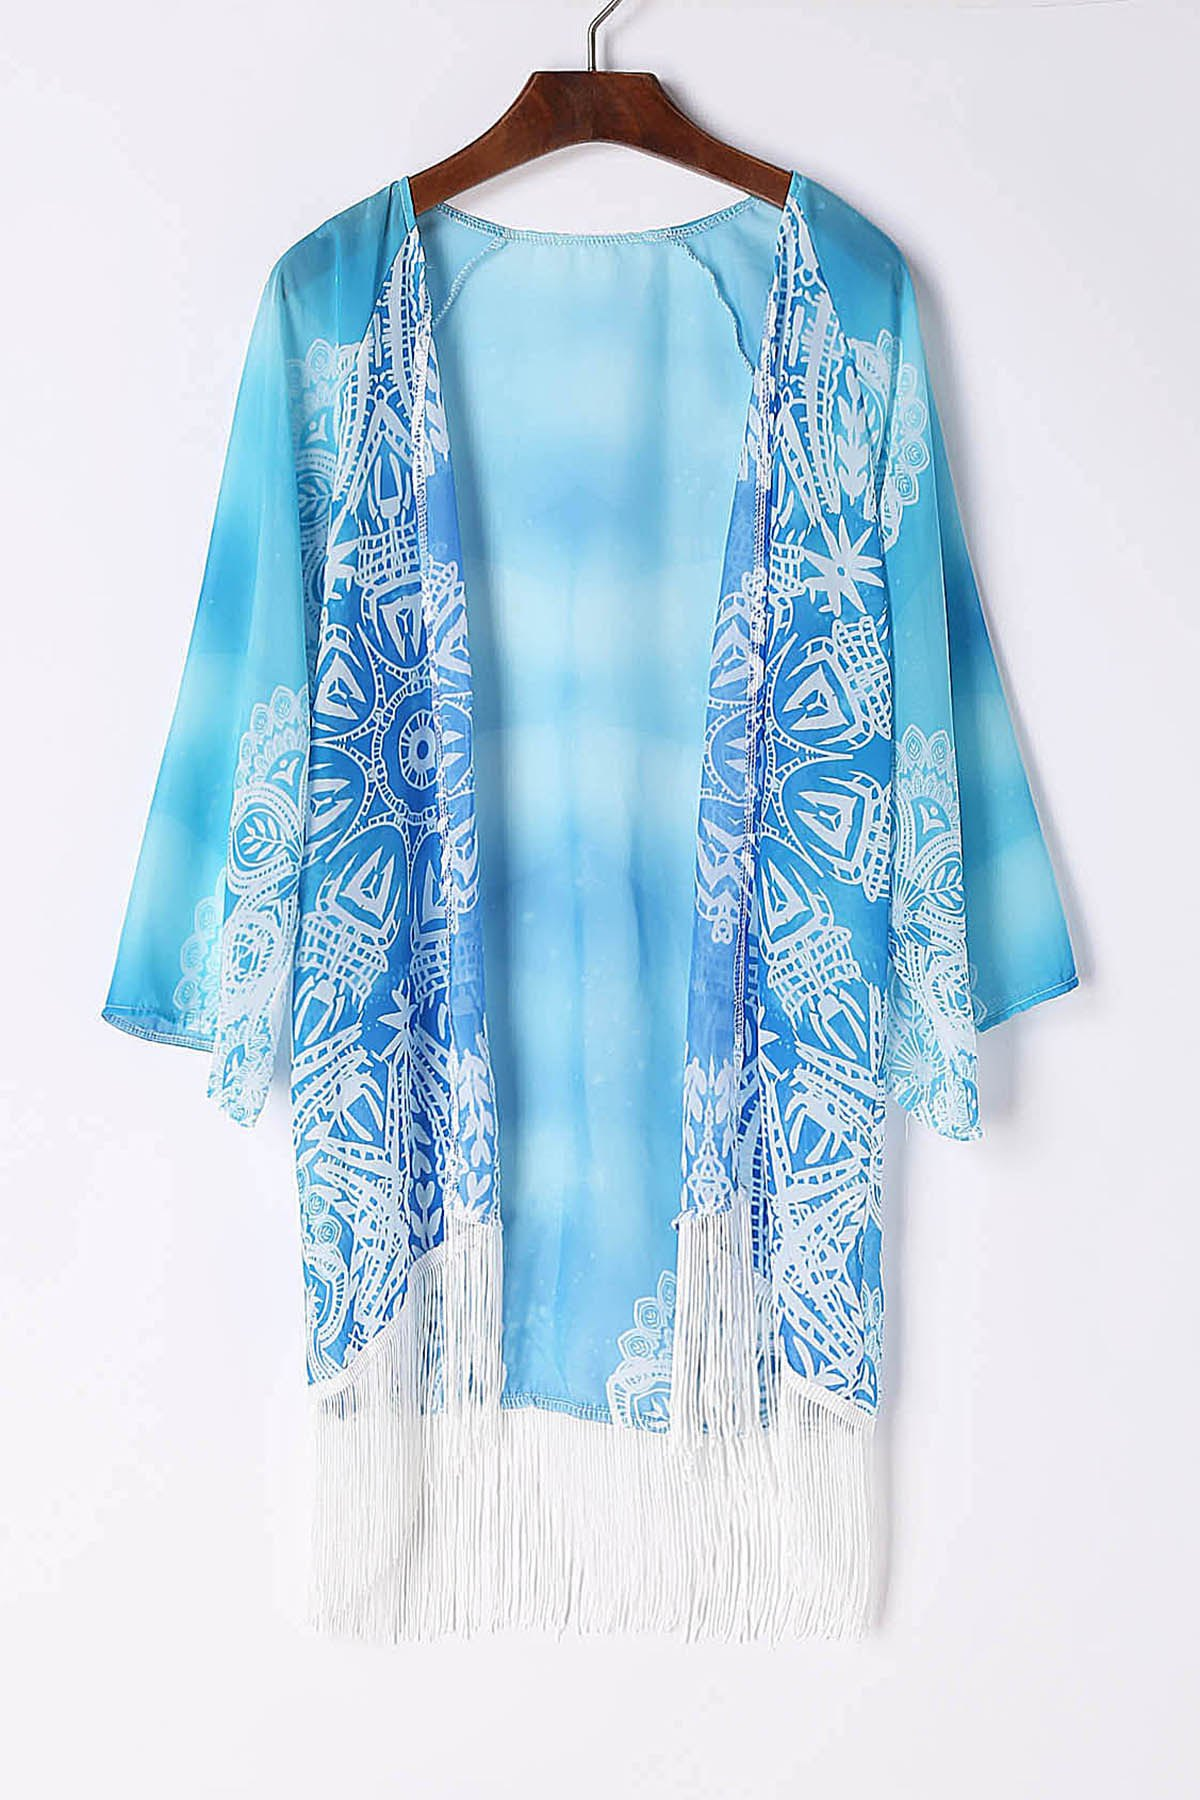 Stylish Collarless 3/4 Sleeve Fringe Design Chiffon Women's Kimono Blouse - LAKE BLUE L